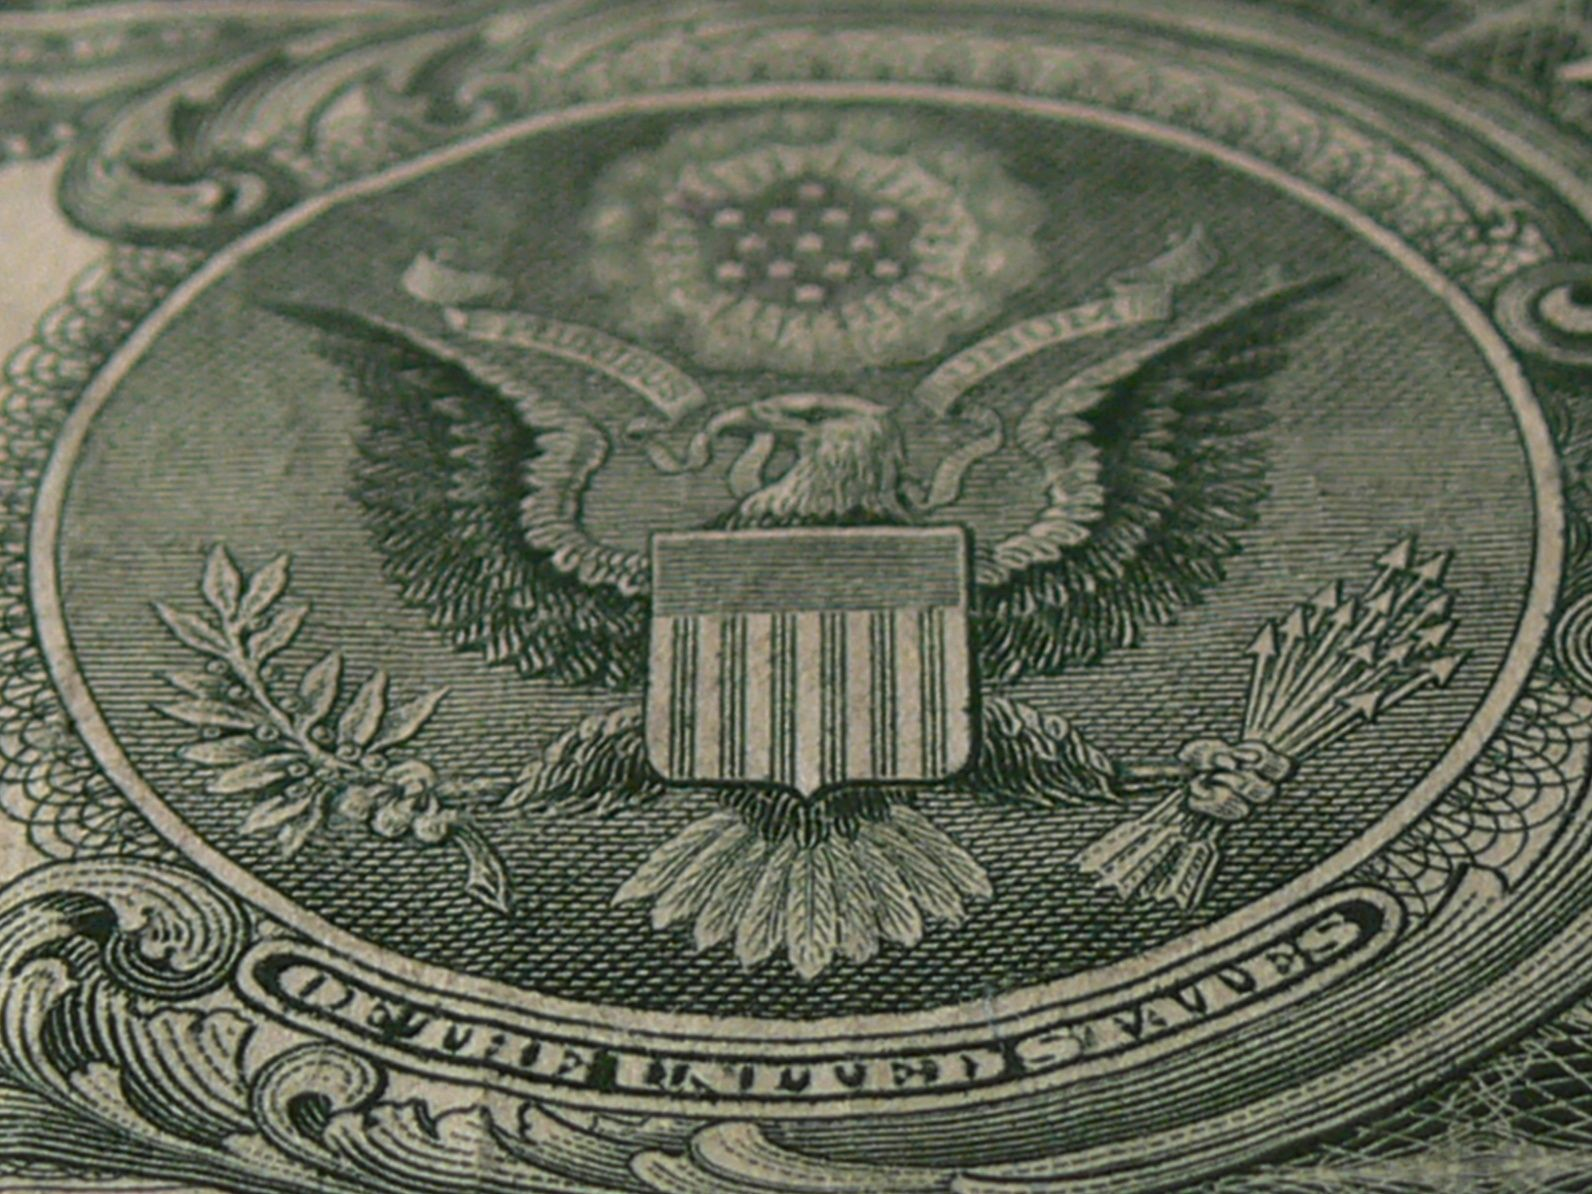 Currency signifying our private capital services in Dallas, TX